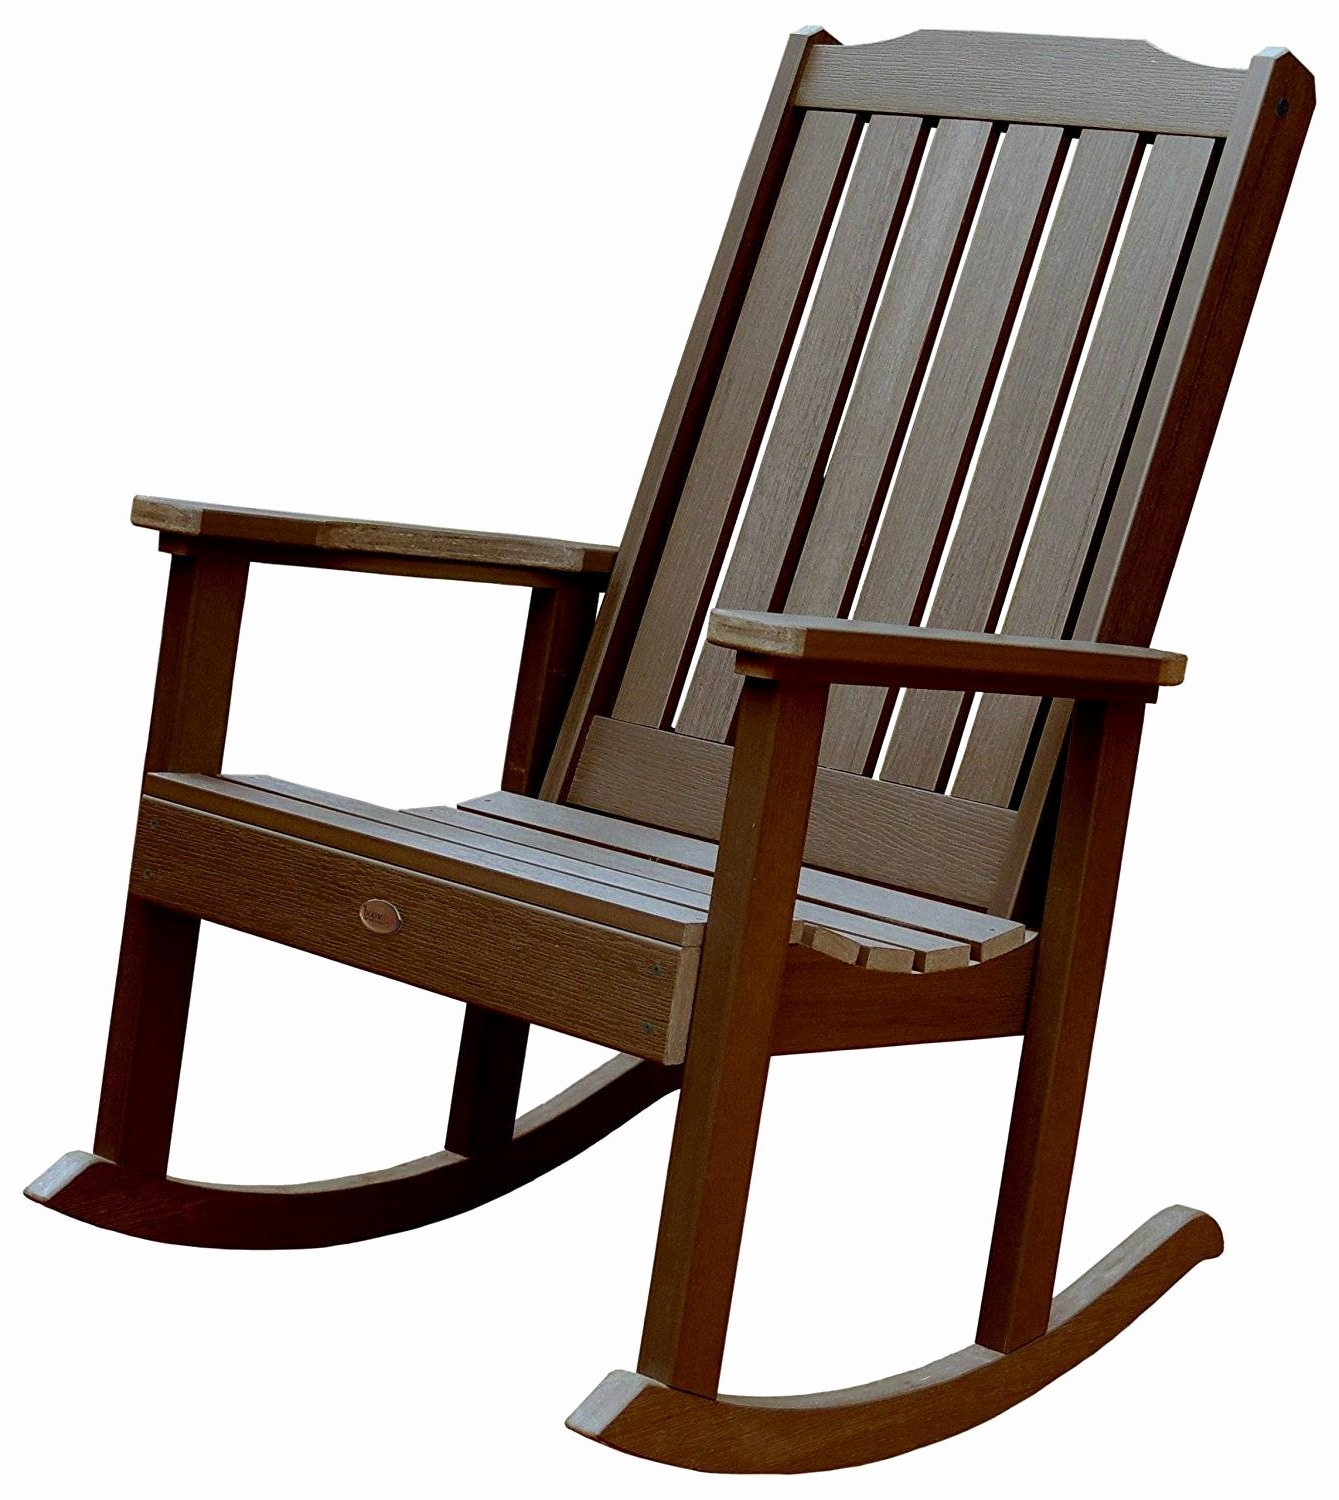 Most Recent Wicker Rocking Chair Set New 3 Piece Bistro Set Furniture Patio With Stackable Patio Rocking Chairs (View 10 of 20)